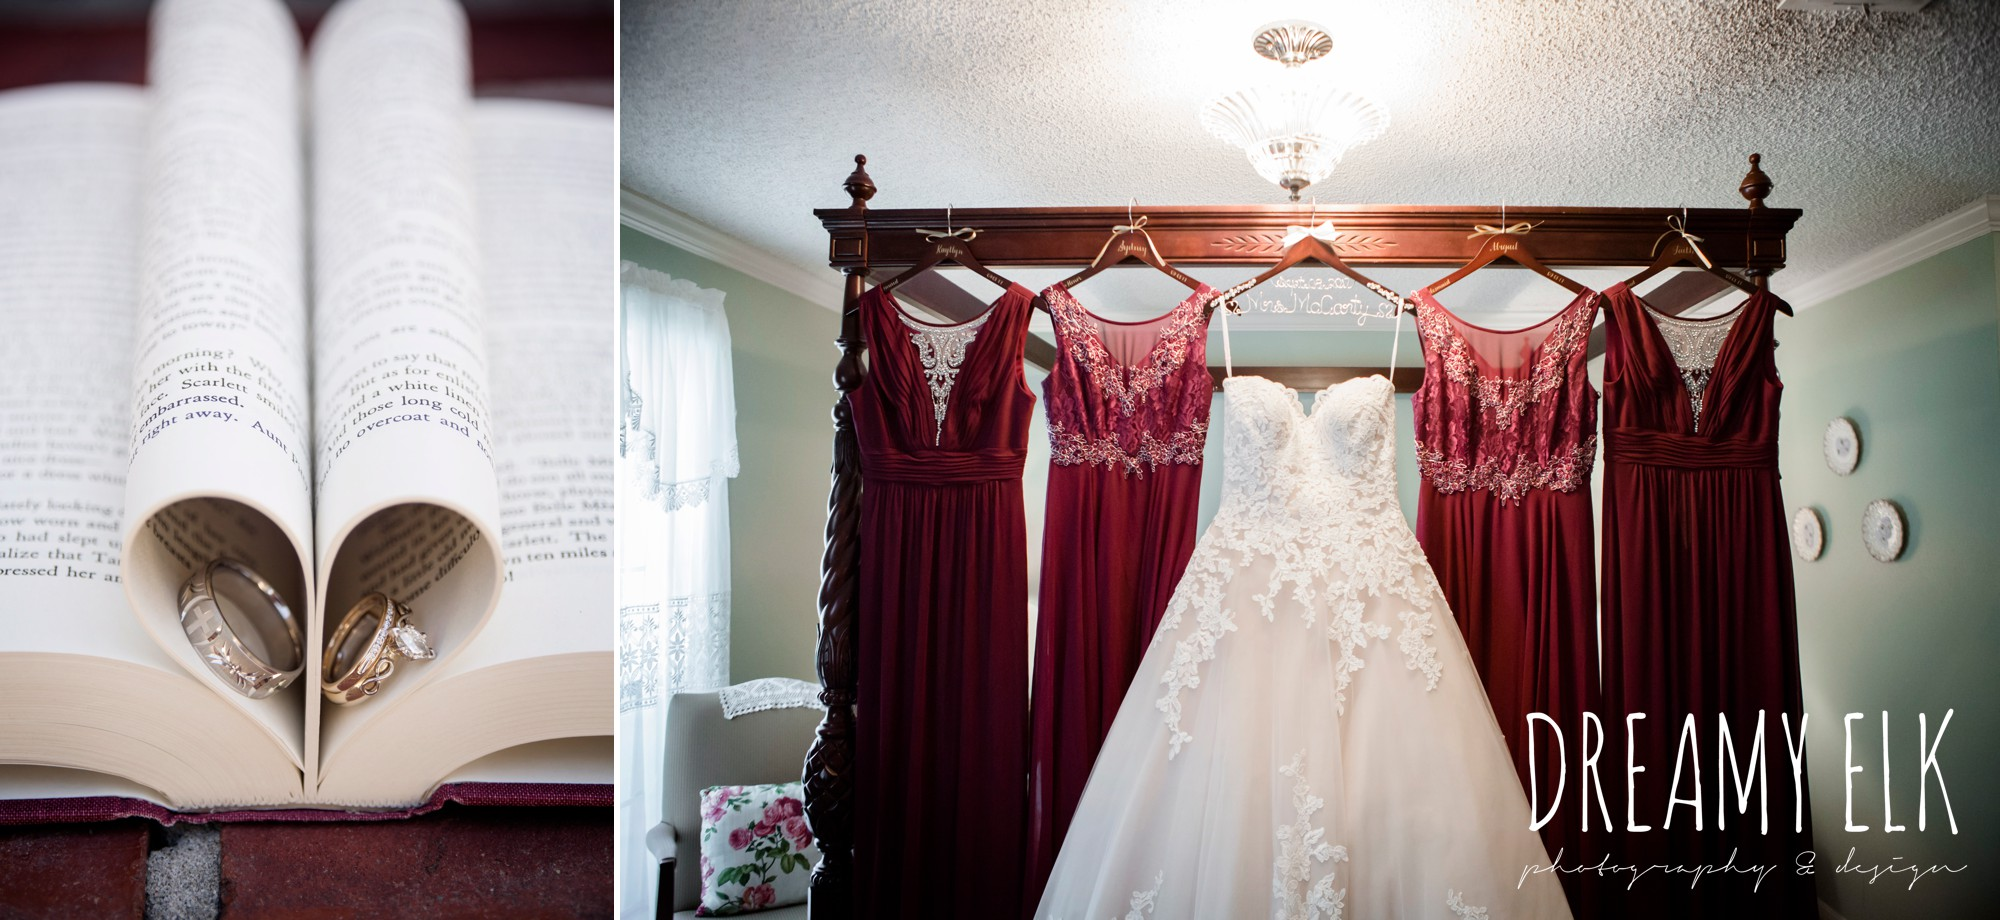 wedding rings in book, mix matched maroon long bridesmaids dress with embellishments, sweetheart lace ballgown wedding dress, oyester underlay, september wedding photo, ashelynn manor, magnolia, texas, austin texas wedding photographer {dreamy elk photography and design}